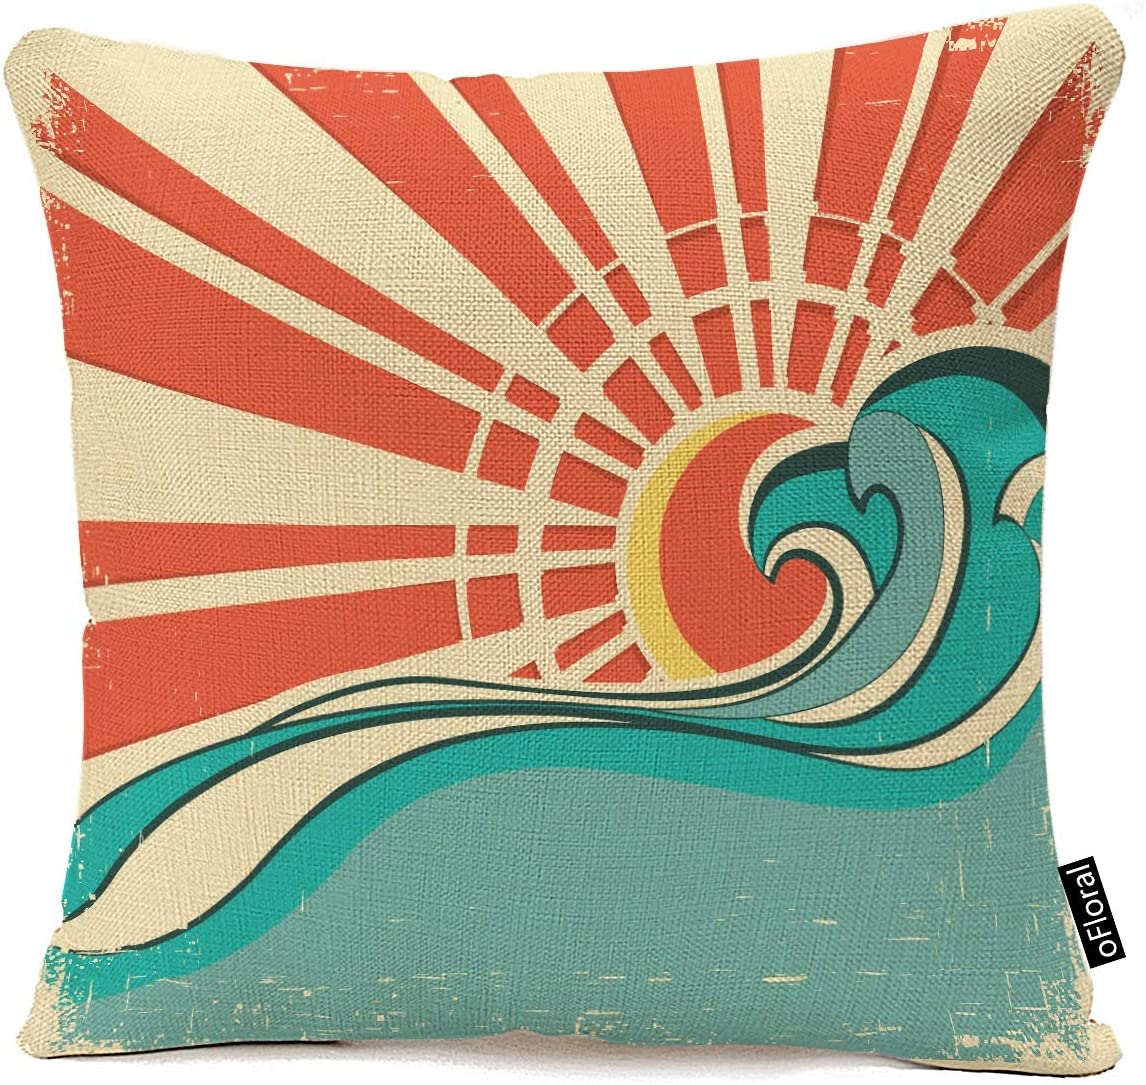 oFloral Throw Pillow Covers Blue Surf Sea Waves Vintage of Nature with Sun Retro Beach Throw Pillow Case Home Decor Square Cotton Linen Pillowcase 18x18 Inches